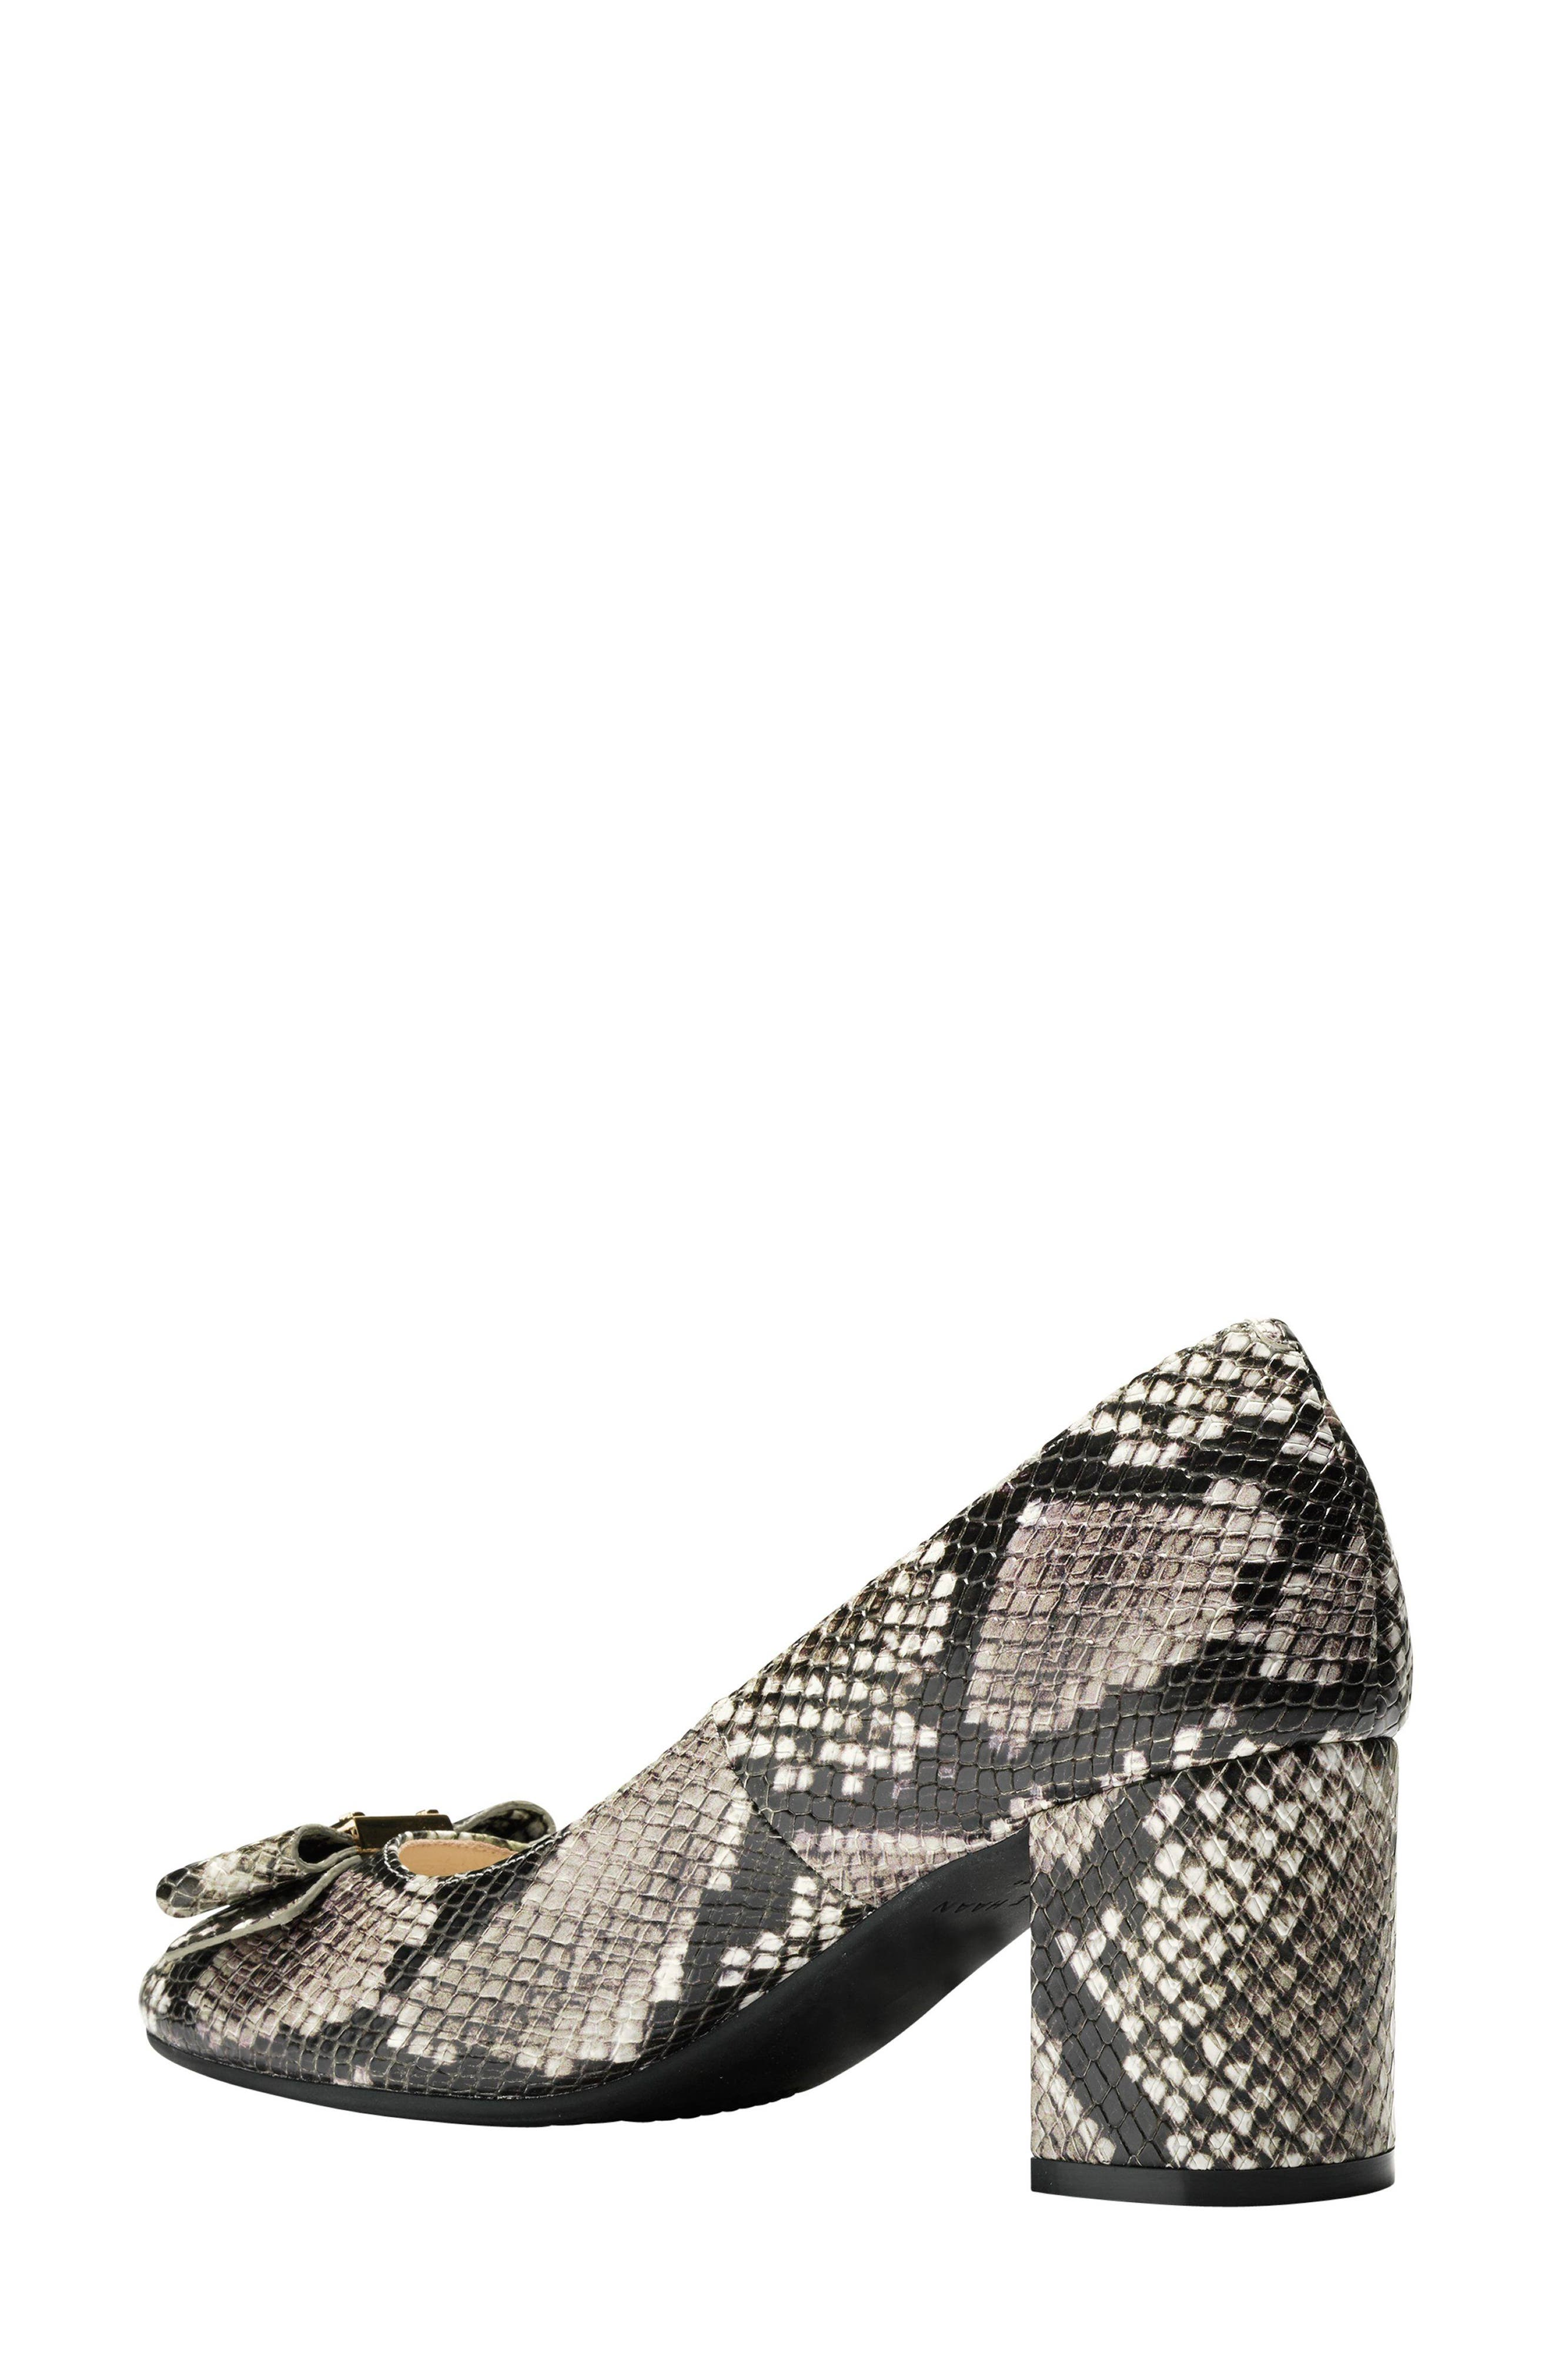 Tali Bow Pump,                             Alternate thumbnail 2, color,                             Beige Snake Print Leather